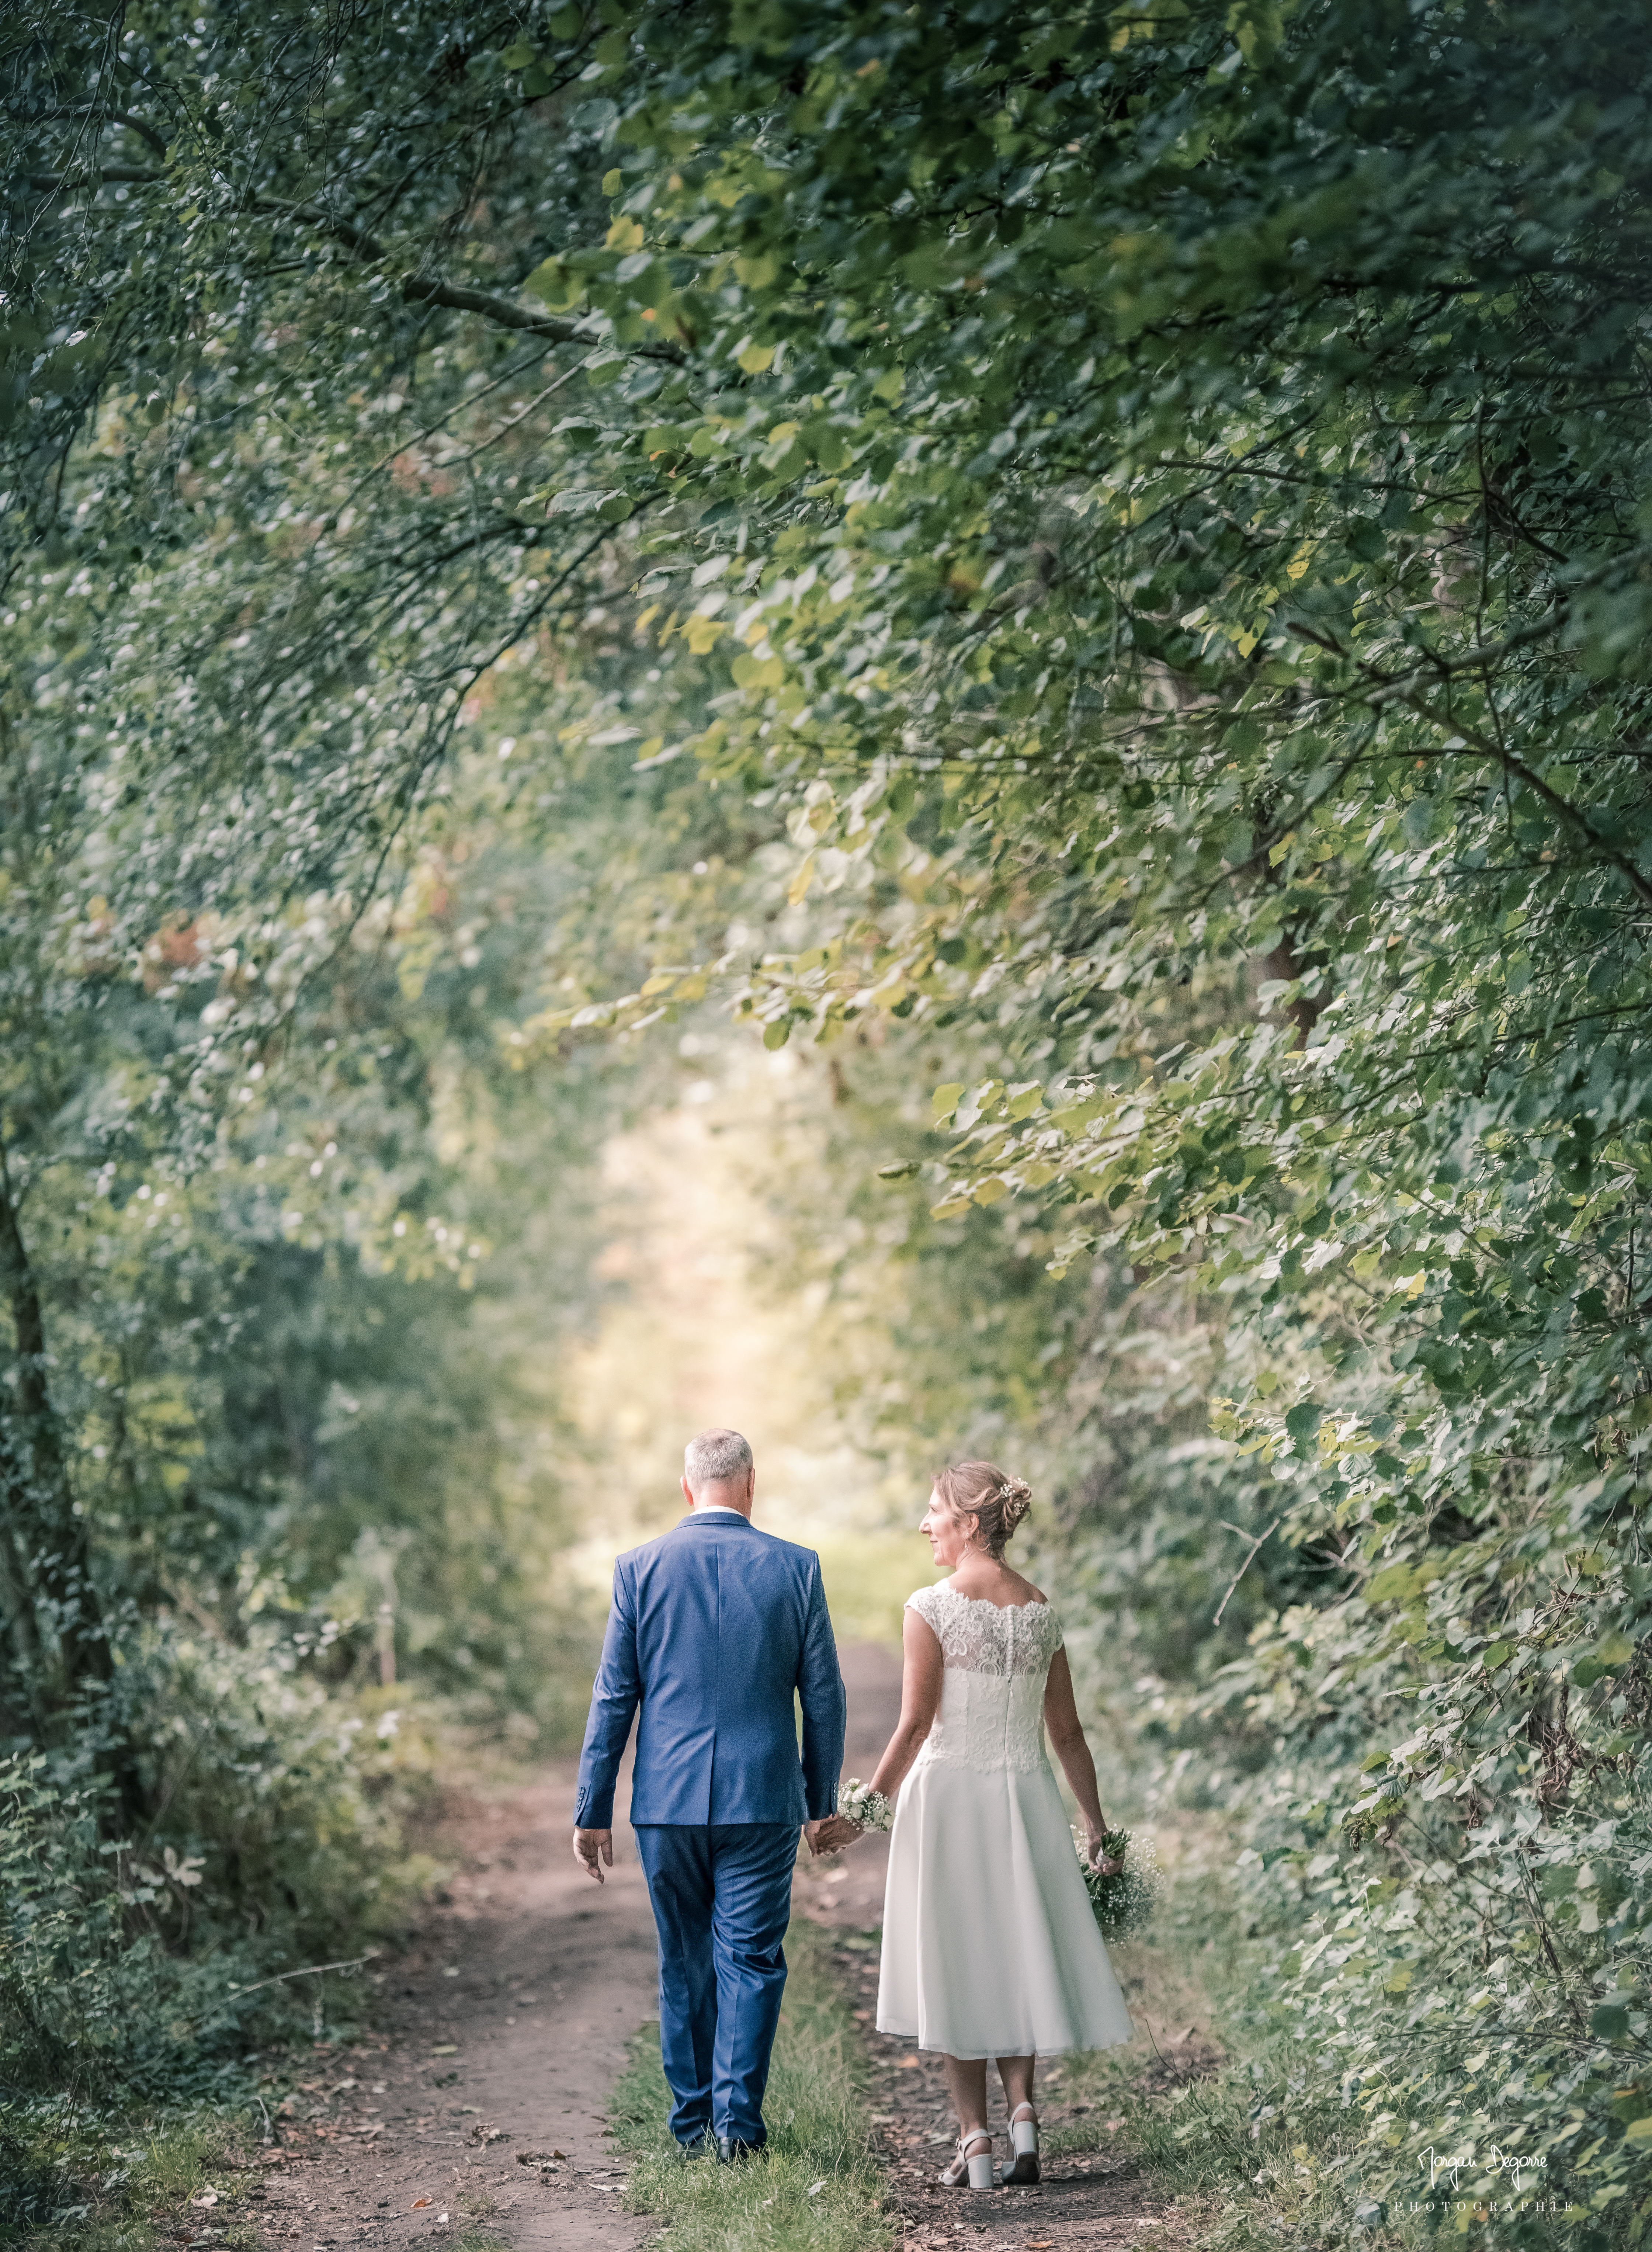 Annick & Thierry 016